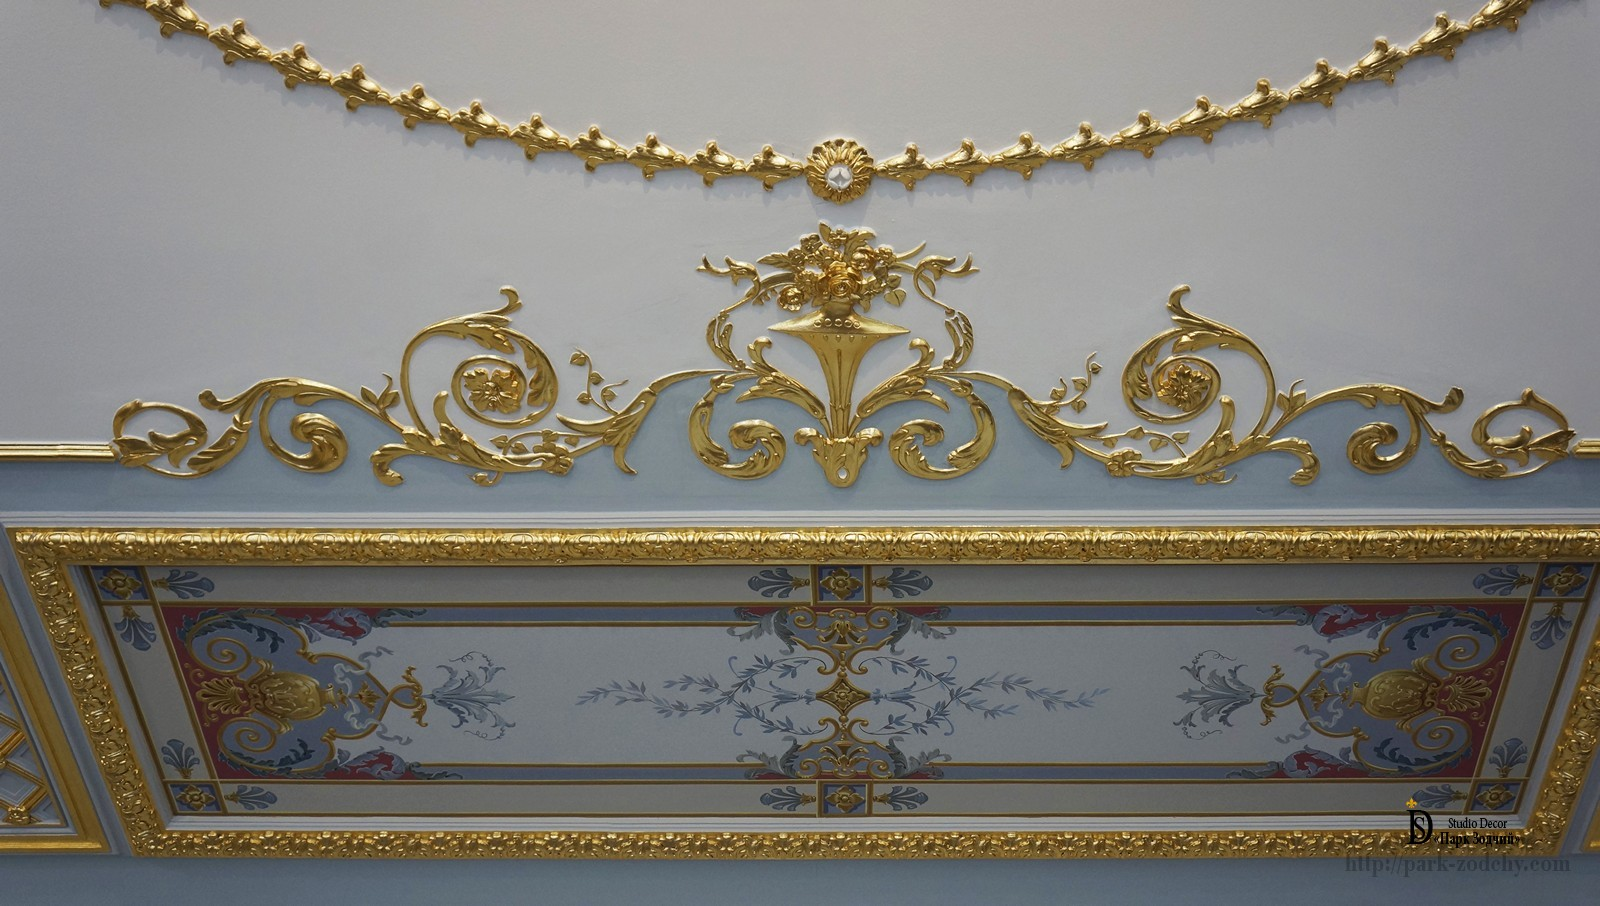 Gilding and painting in a classical setting